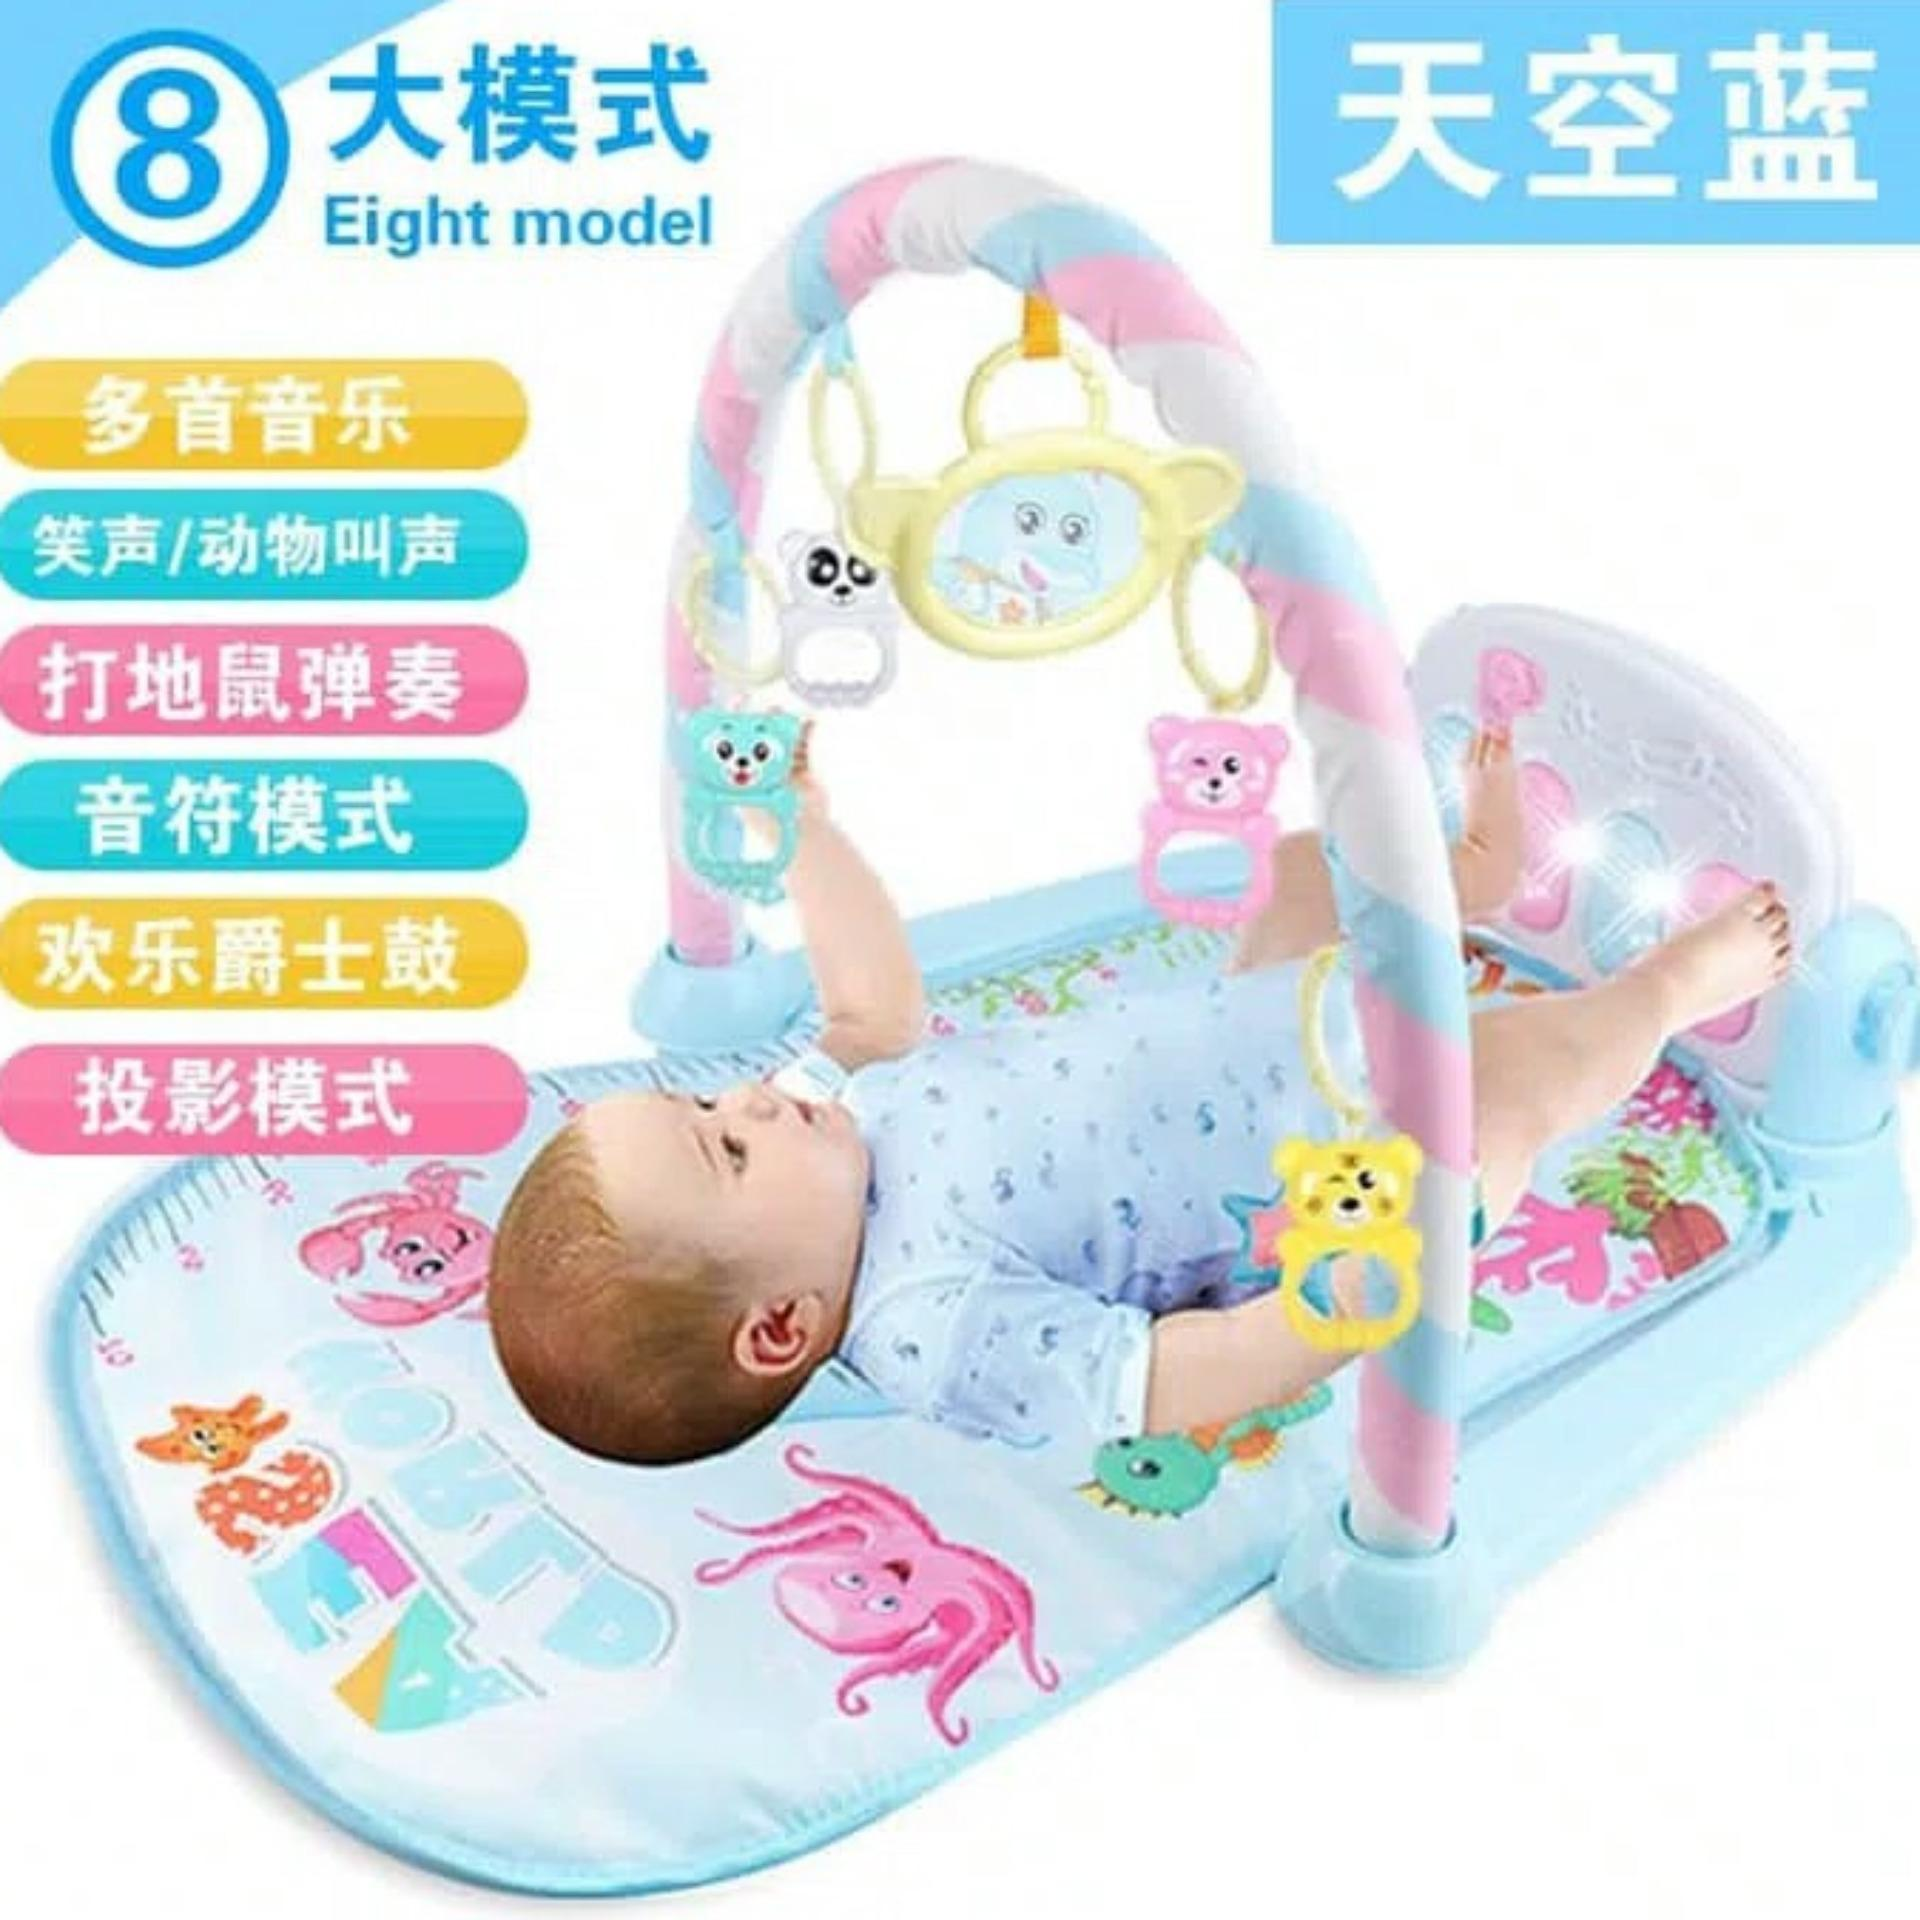 BABY GYM PIANO PLAYMAT MUSICAL